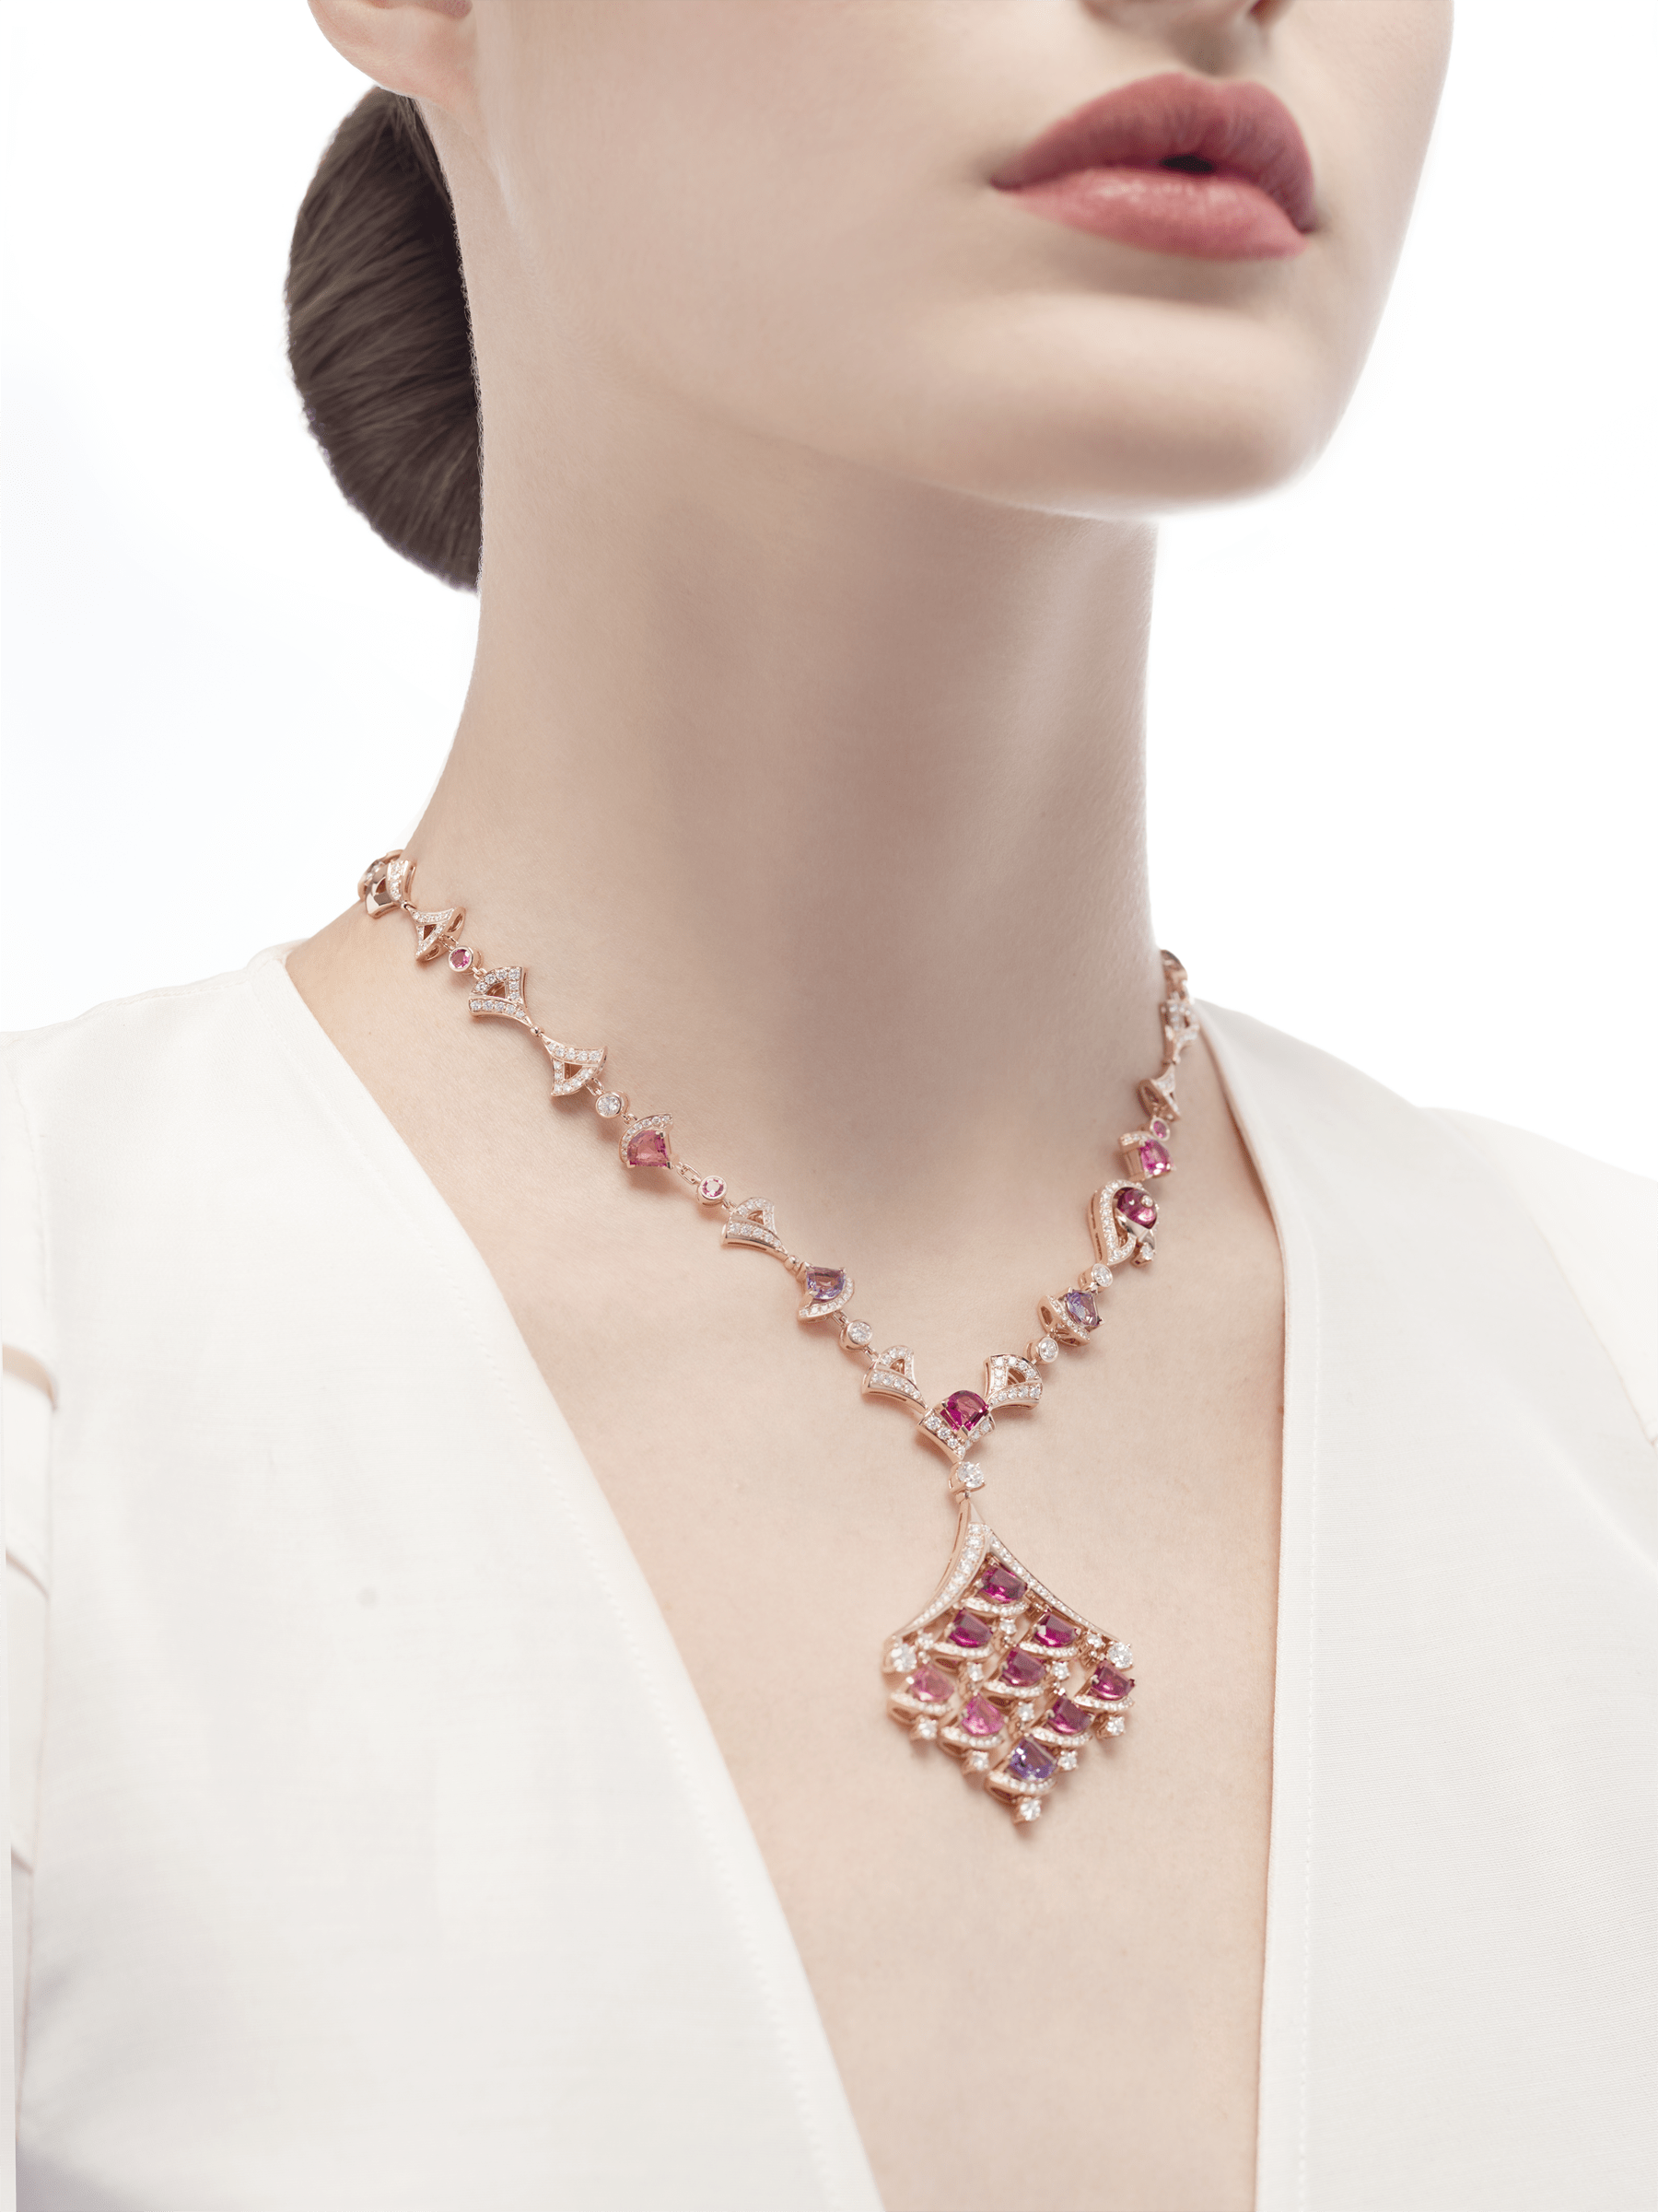 DIVAS' DREAM necklace in 18 kt rose gold, set with pink rubellite, pink tourmaline amethysts and pavé diamonds. 354074 image 2